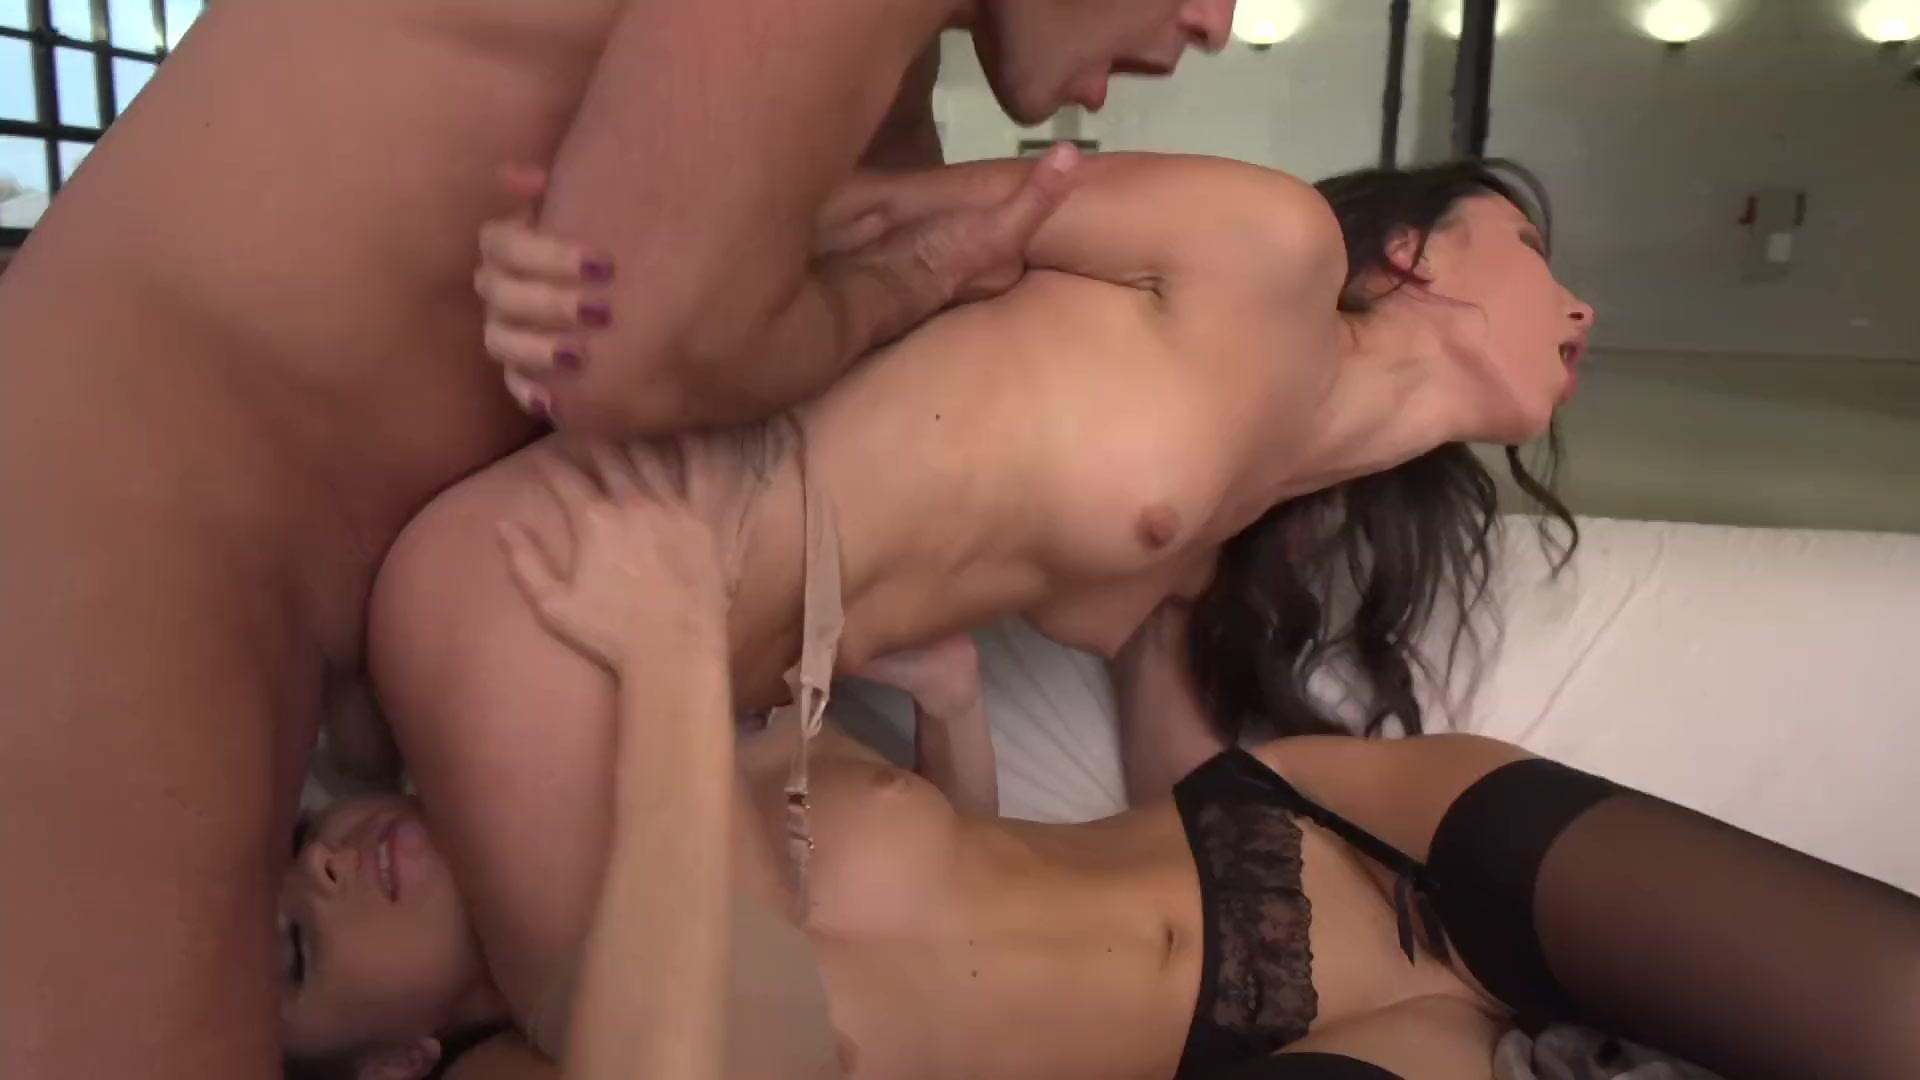 Forced Butt Sex awesome forced orgasm ixxx vids for free, related - amateur